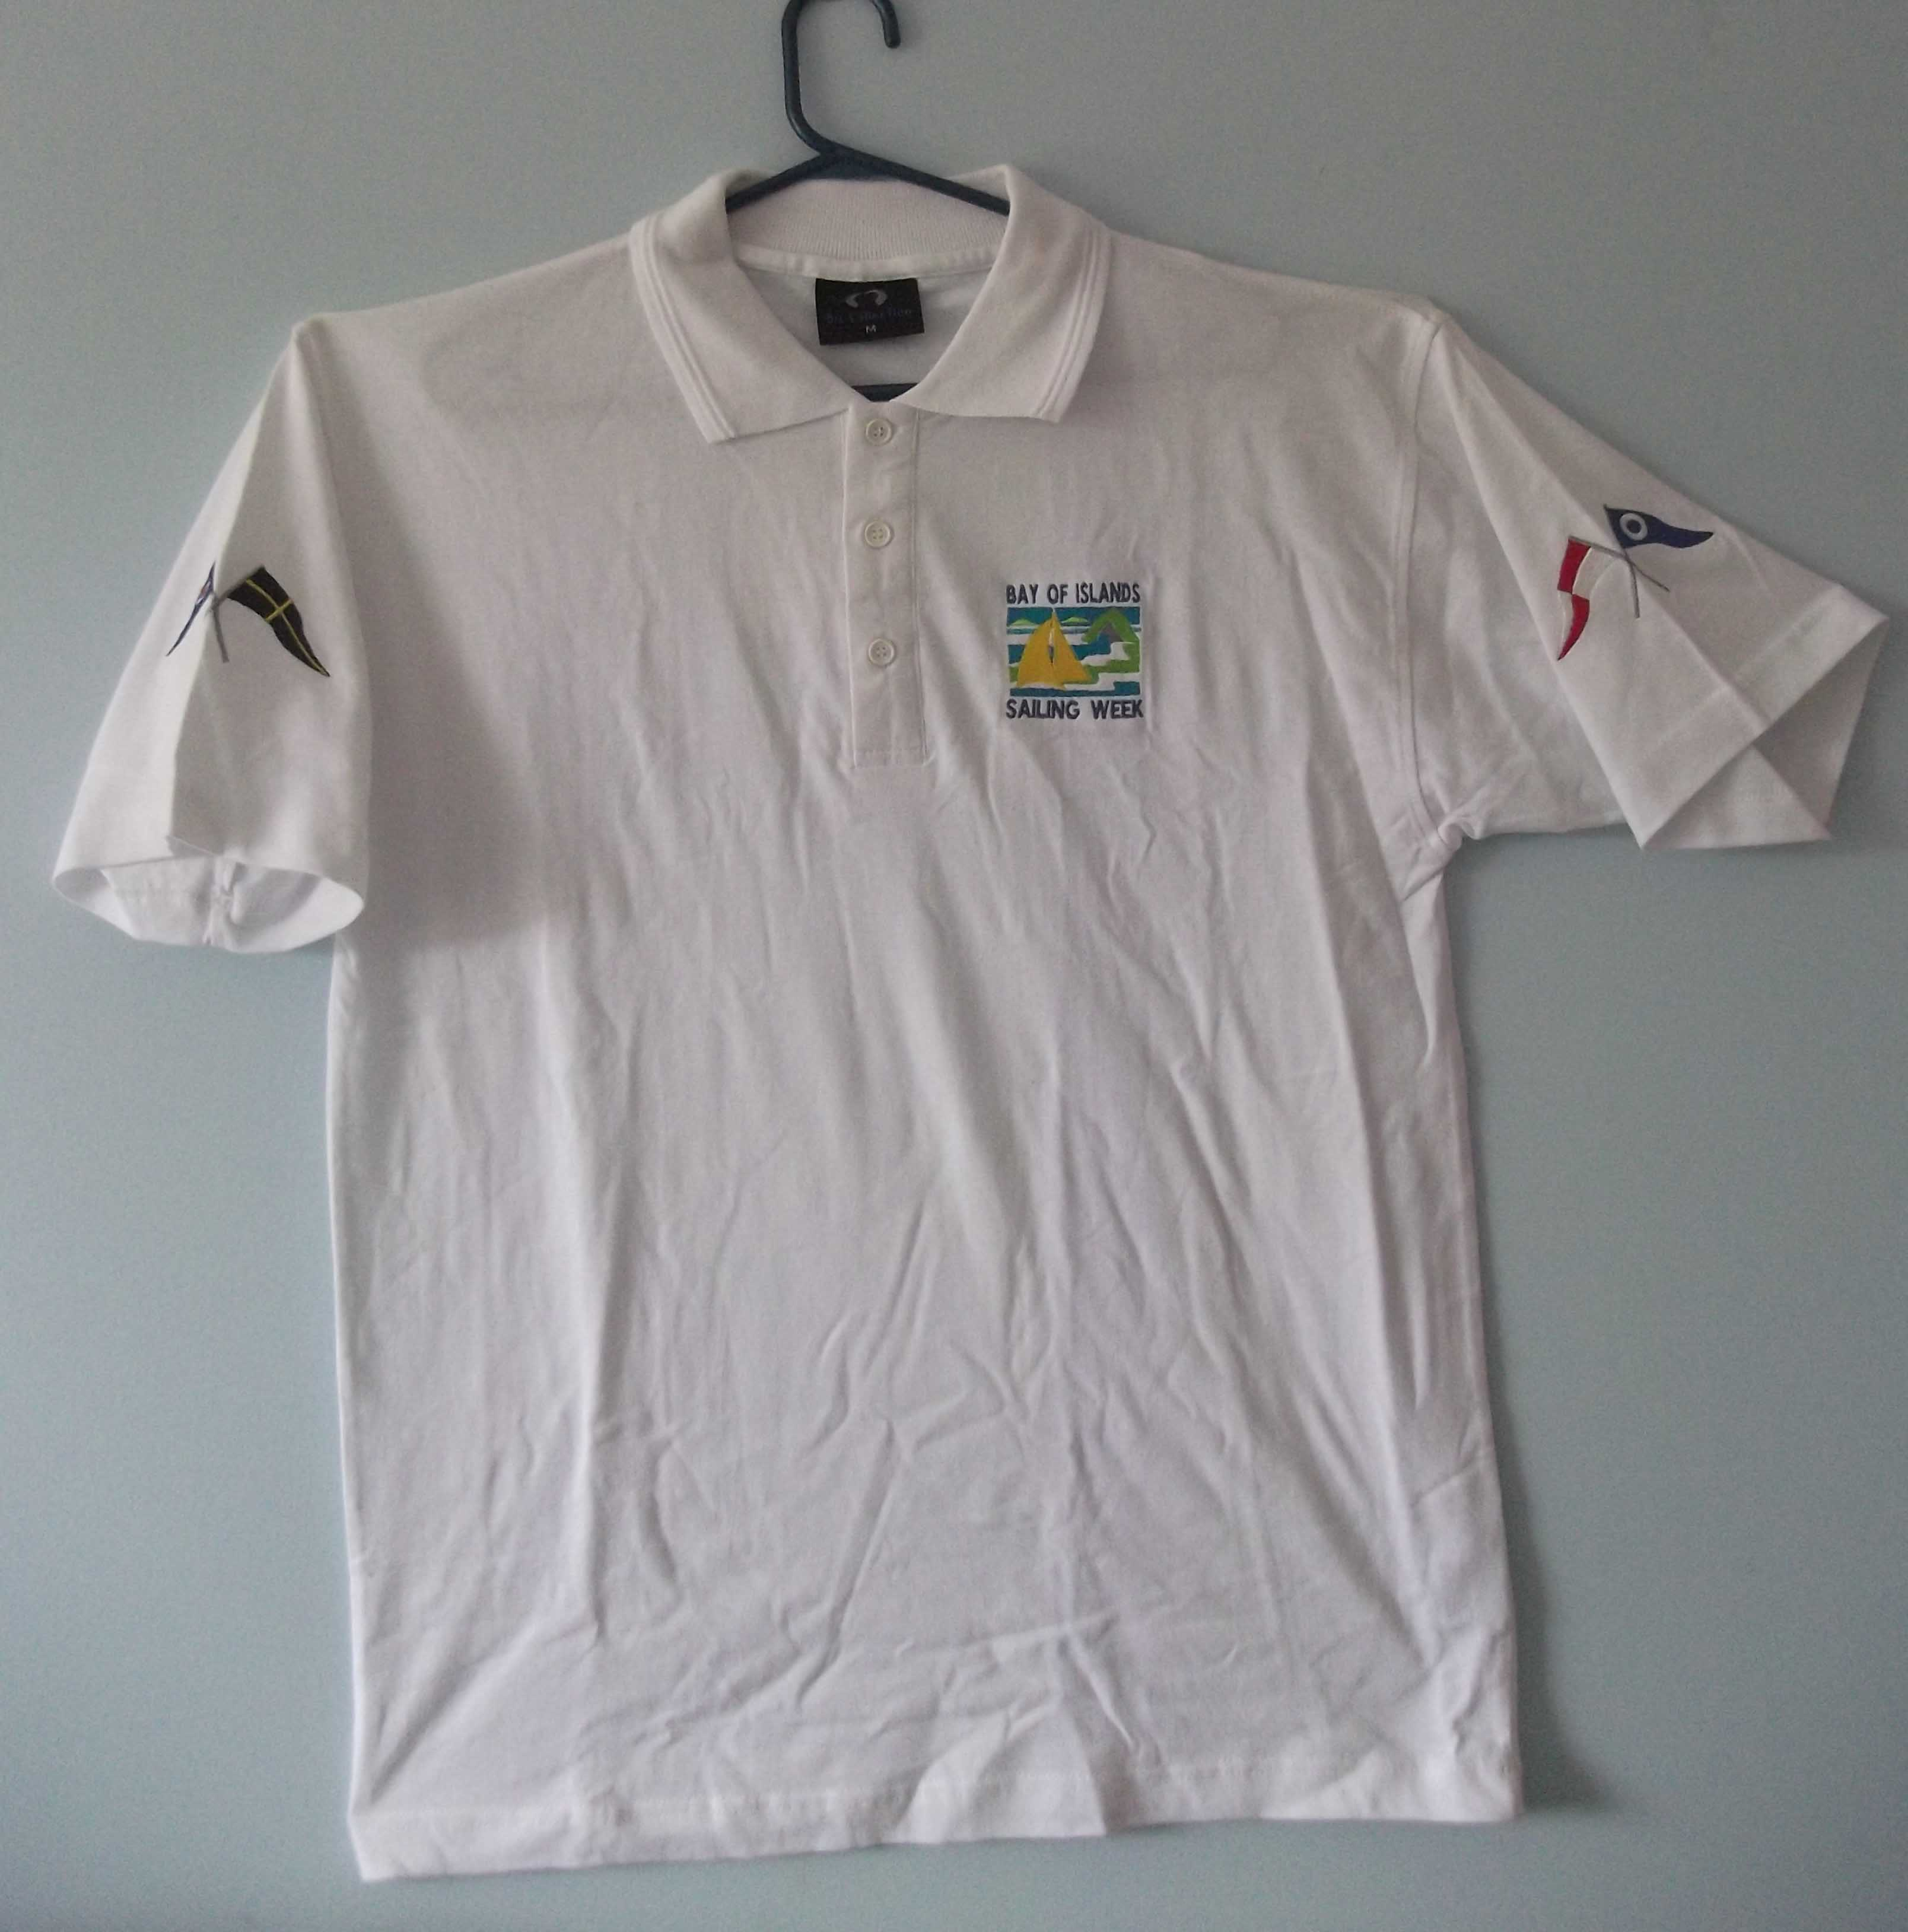 Bay of Islands Sailing Week T-Shirt